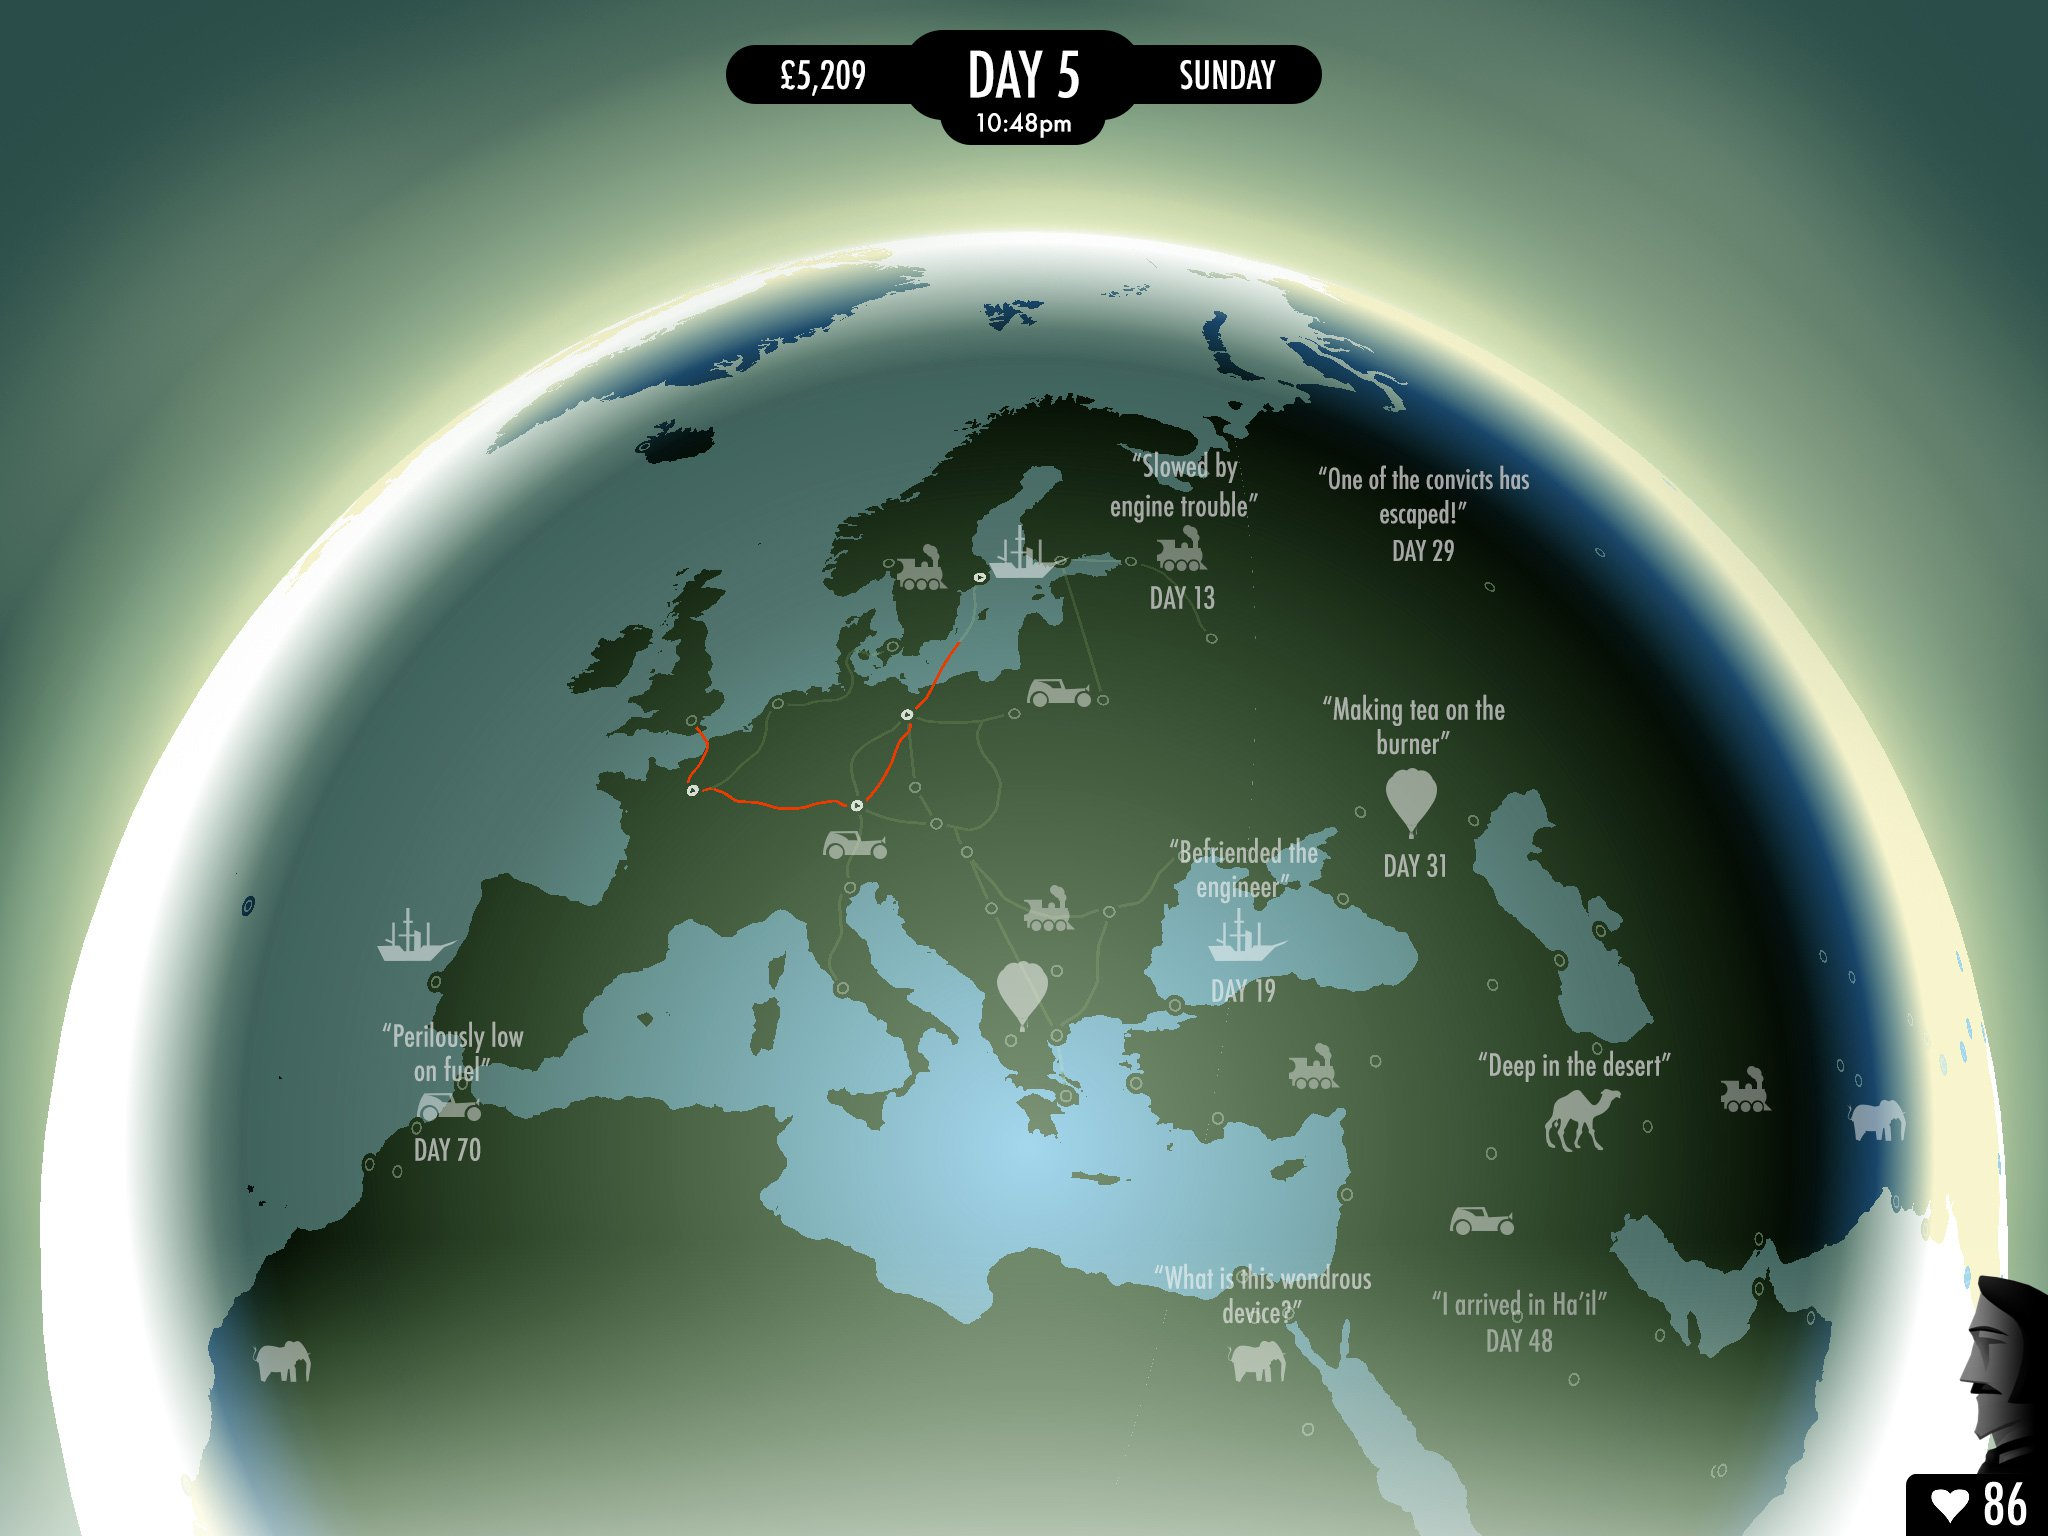 80 Days, inkle's brilliant steampunk gamebook version of Jules Verne's classic tale, is available right now on Android